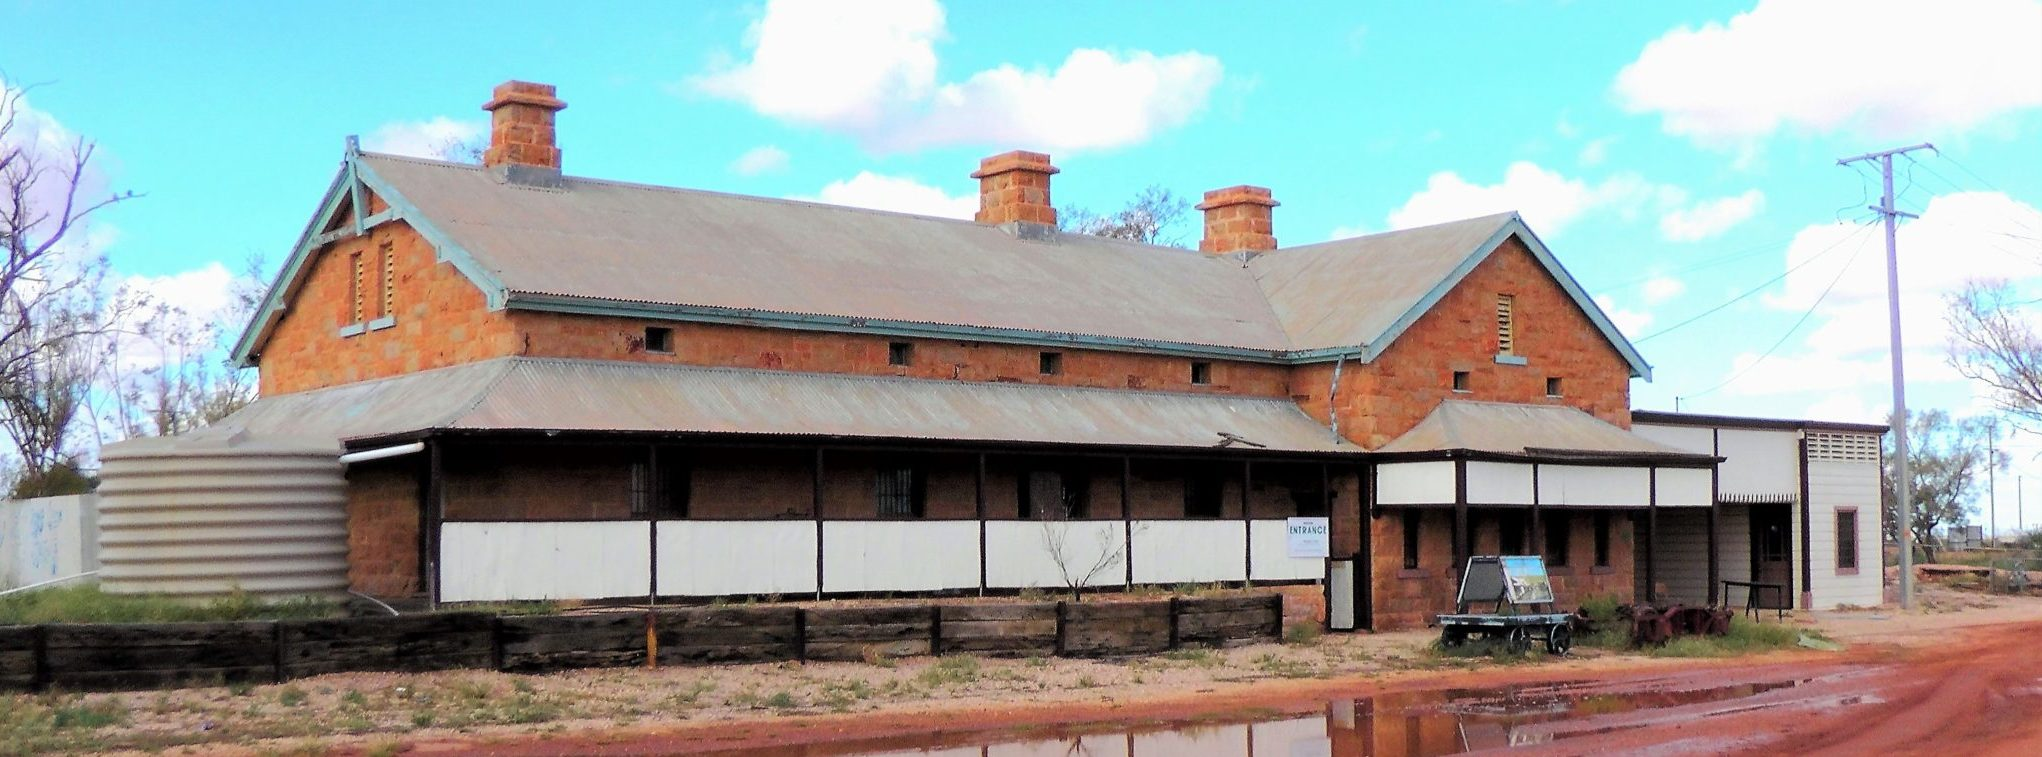 Oodnadatta Museum is housed in the old Ghan Railway Station.